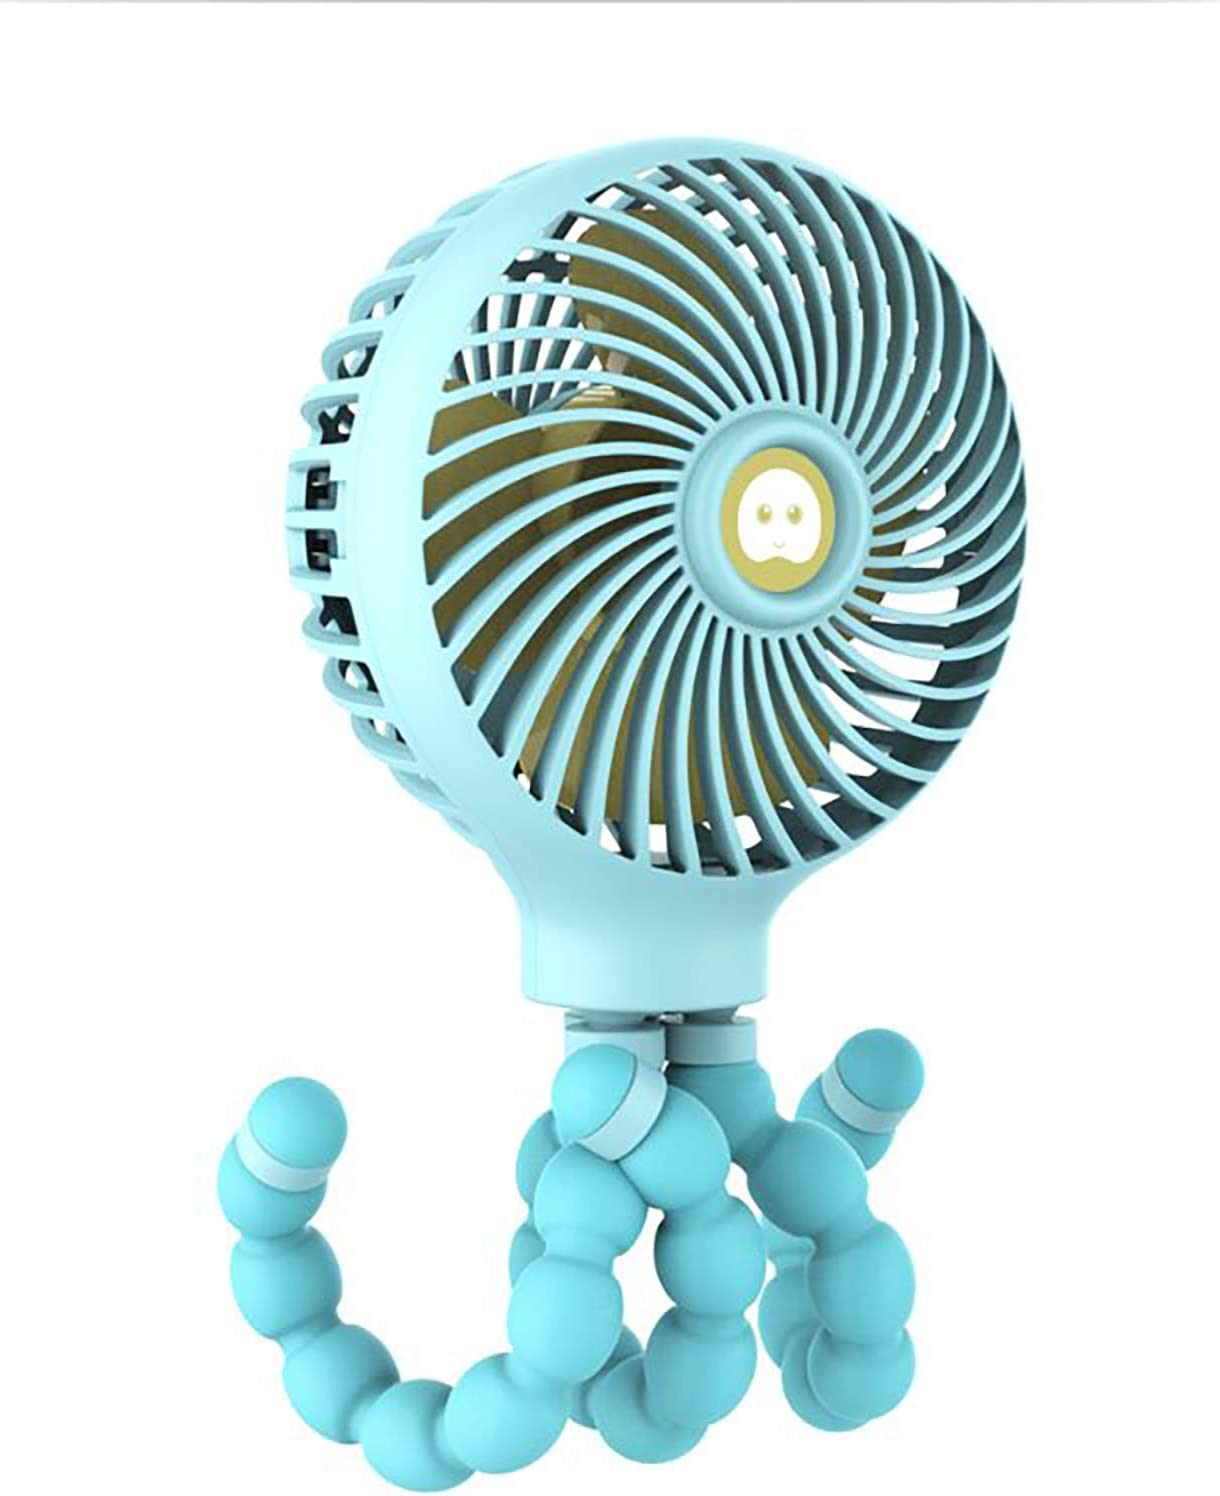 AW-SJ Portable Small Handheld Fan sold 1 year warranty out Tripod Flexible On Clip with